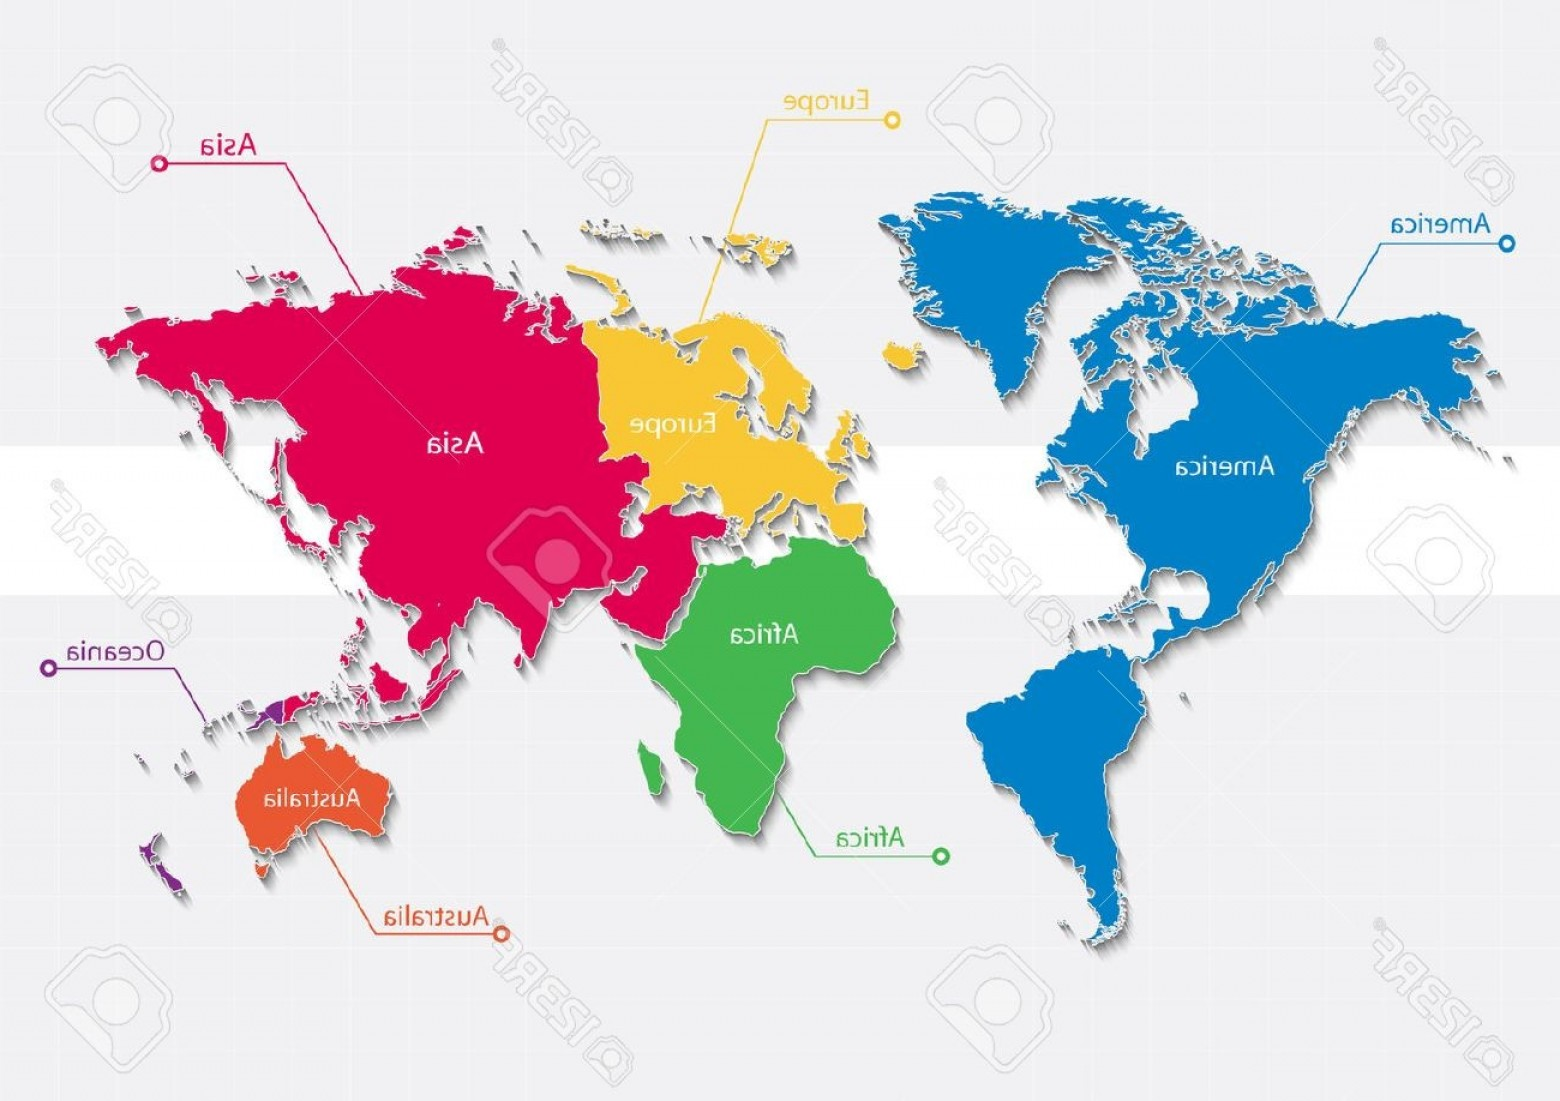 Asia Continent Map Vector: World Map Continents Colors Vector Individual Separate Europe Asia America Africa Austral Of